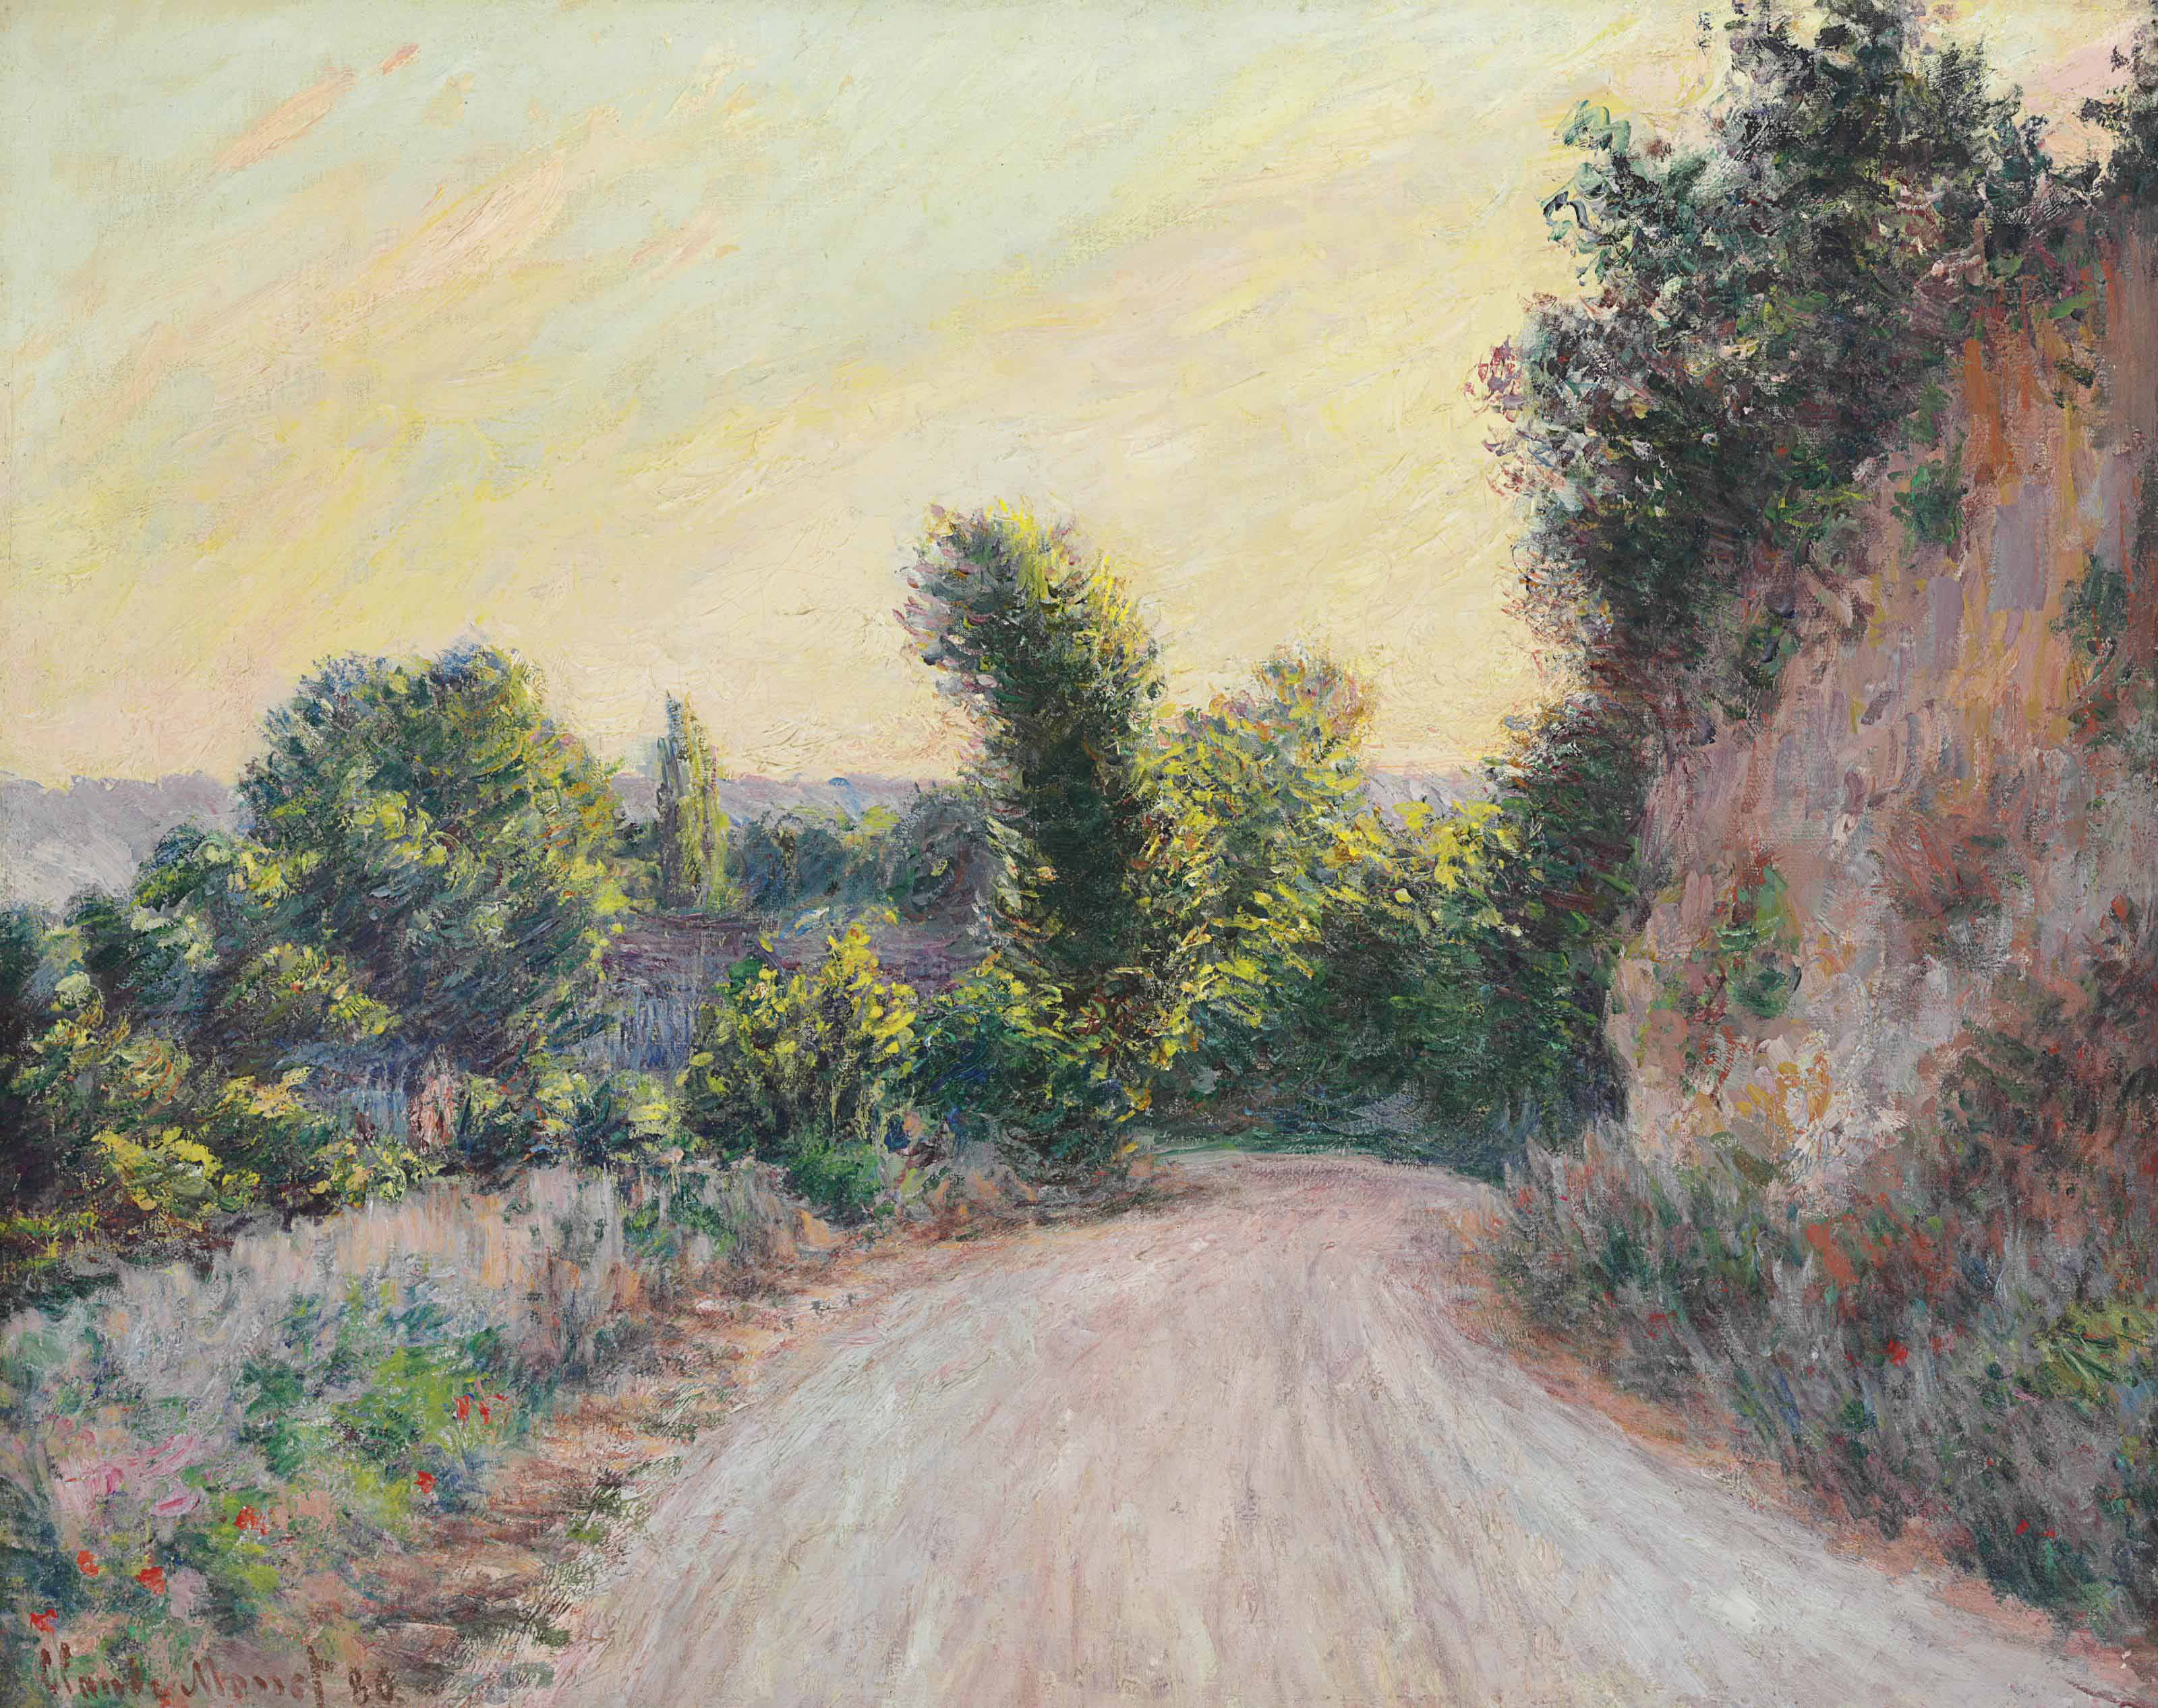 https://www.christies.com/img/LotImages/2013/NYR/2013_NYR_02782_0019_000(claude_monet_chemin).jpg